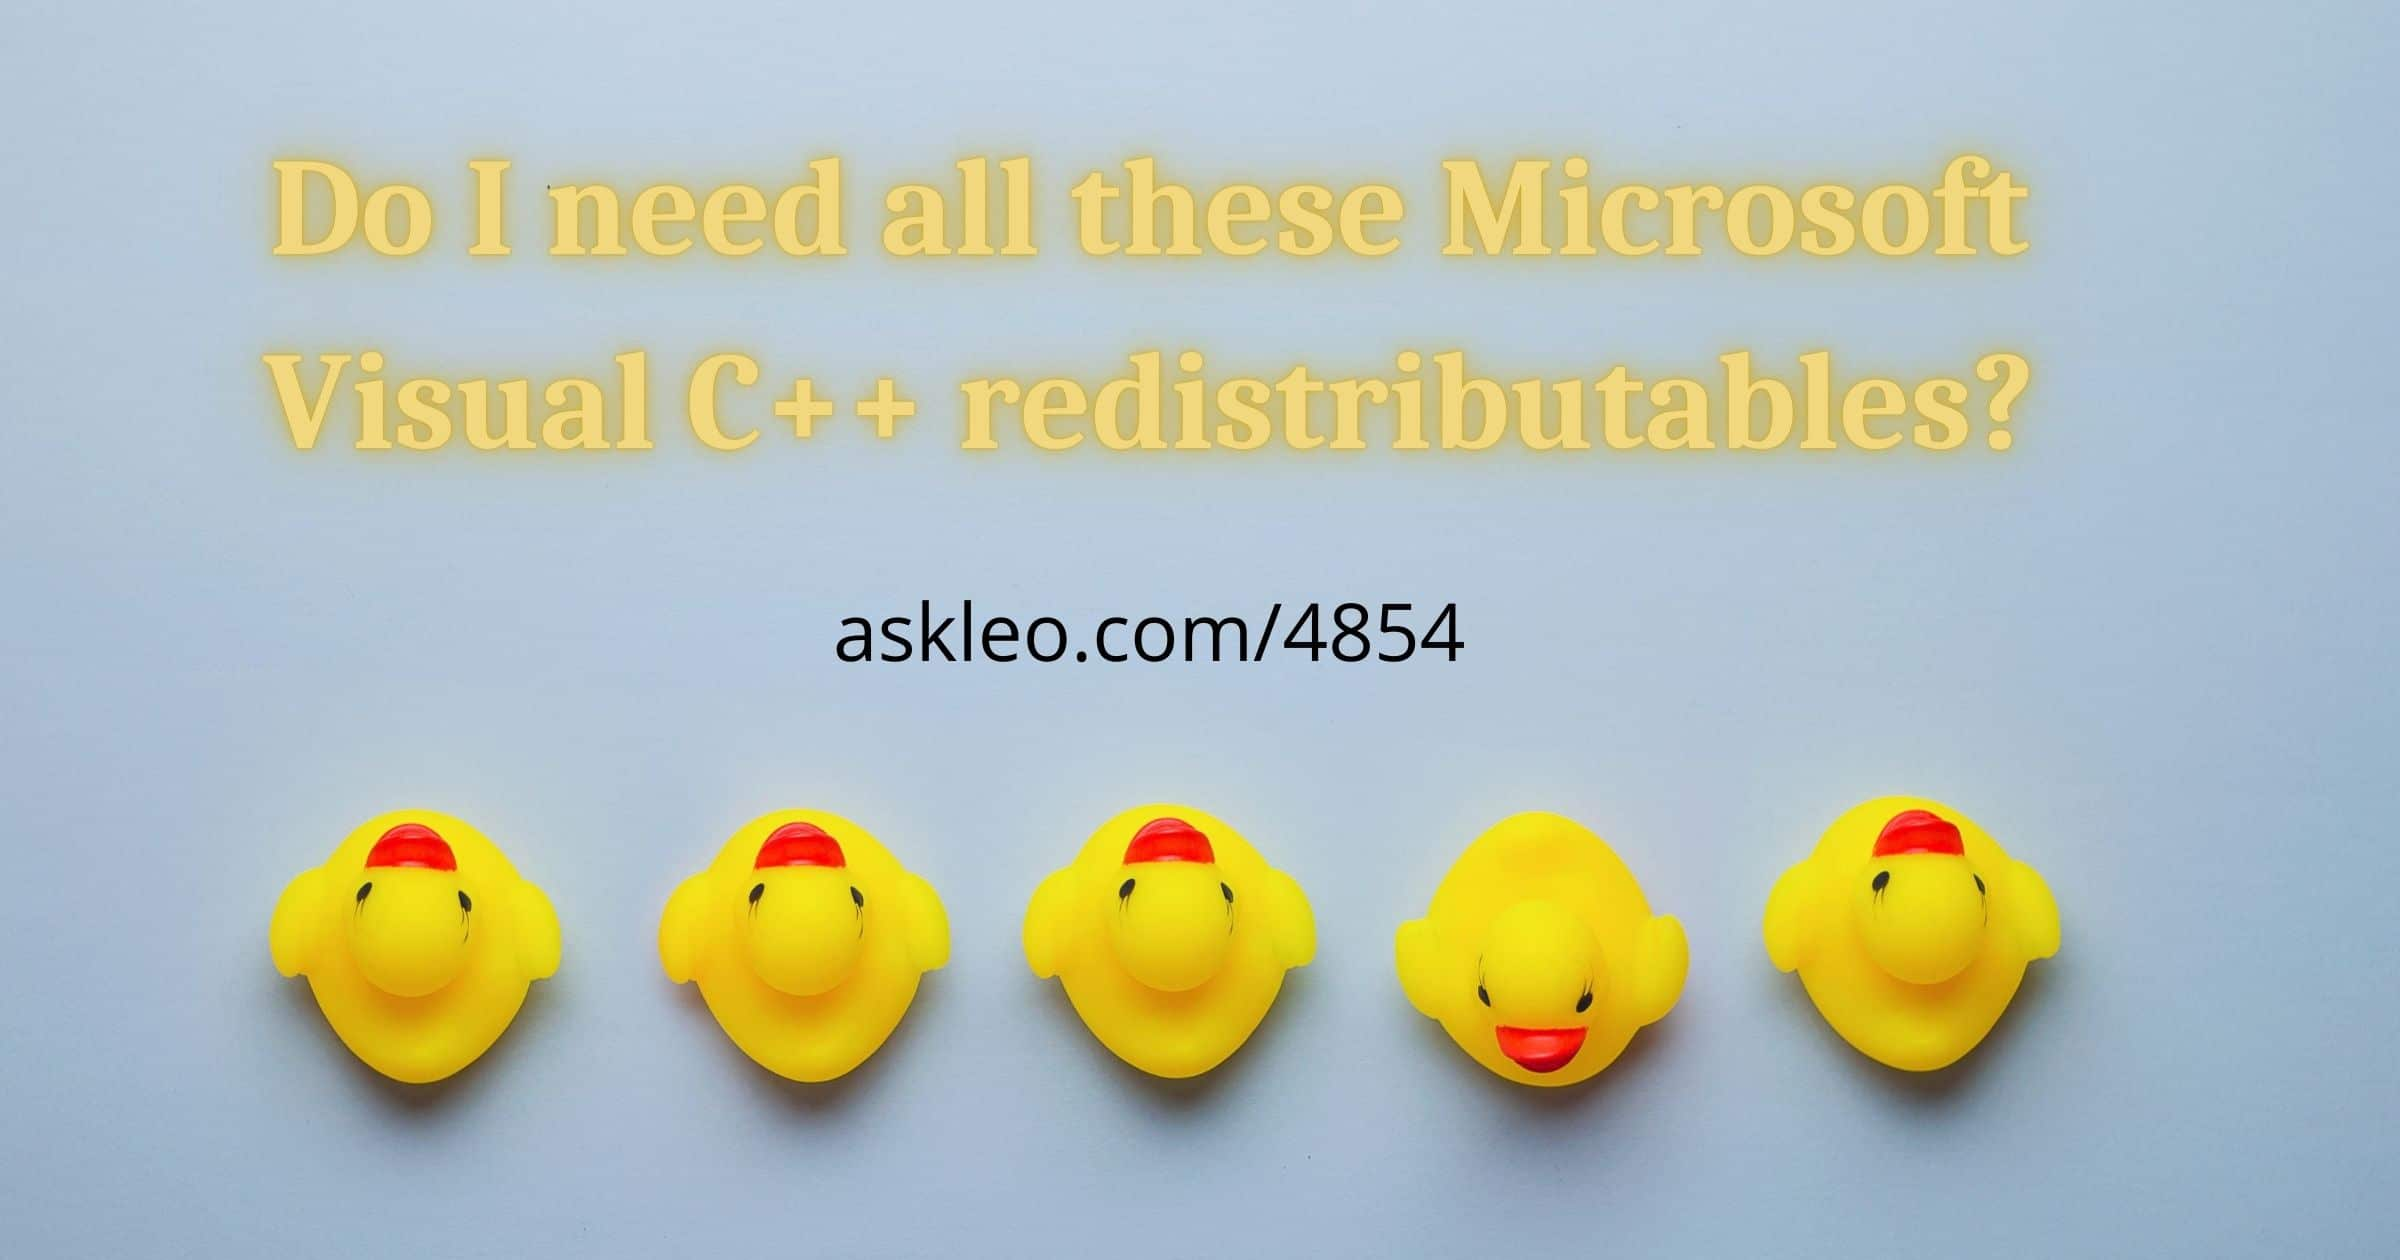 Do I Need All These Microsoft Visual C++ Redistributables?